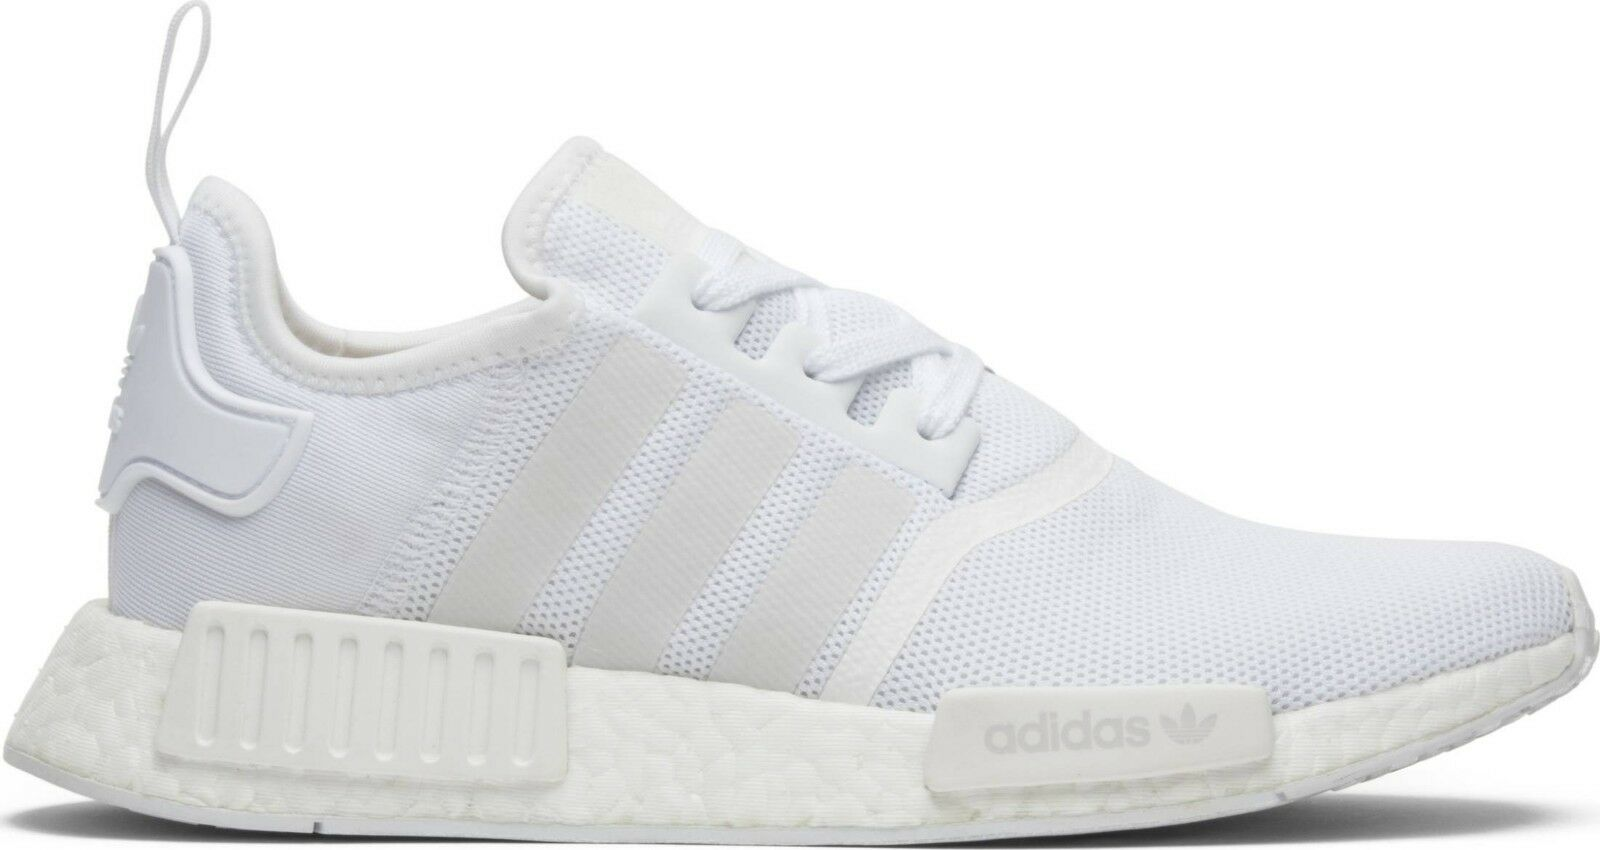 Man's/Woman's: NMD R1 'Triple White':  Durable service